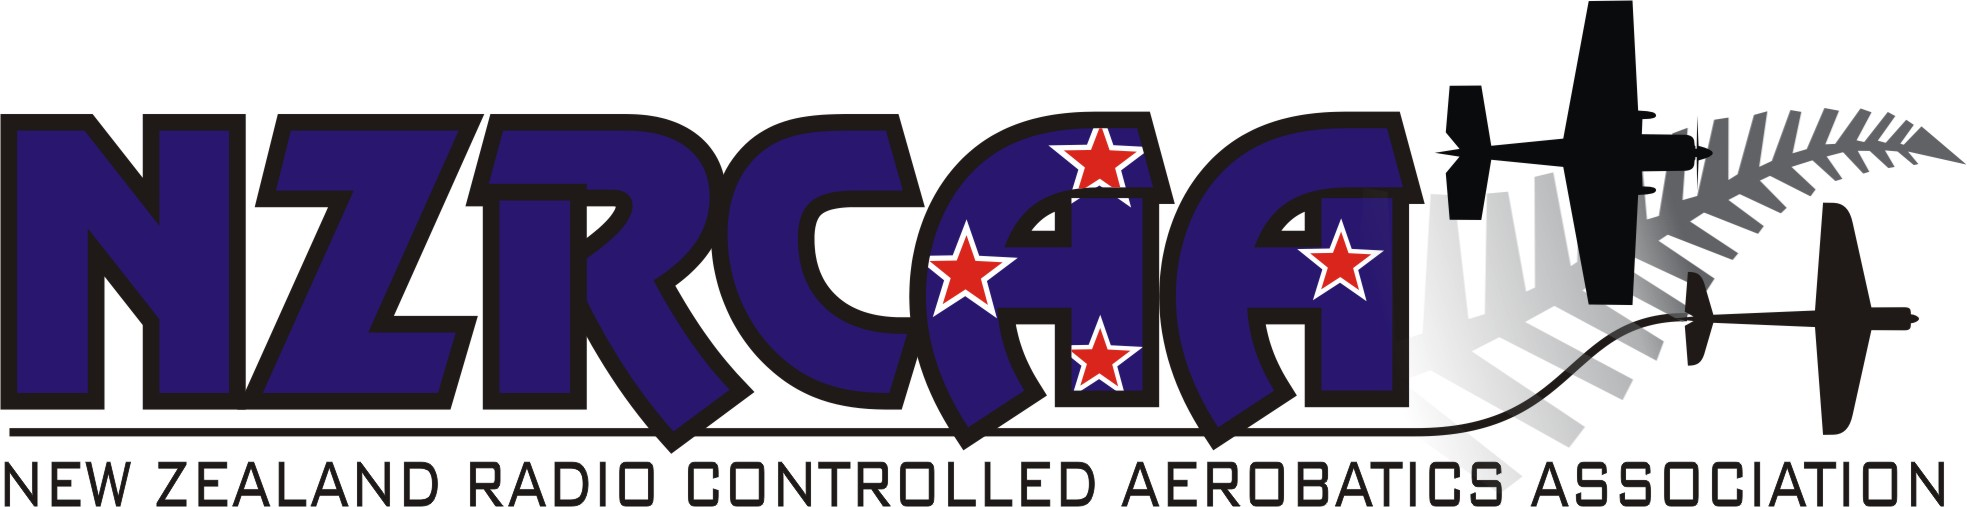 New Zealand Radio Controlled Aerobatics Association